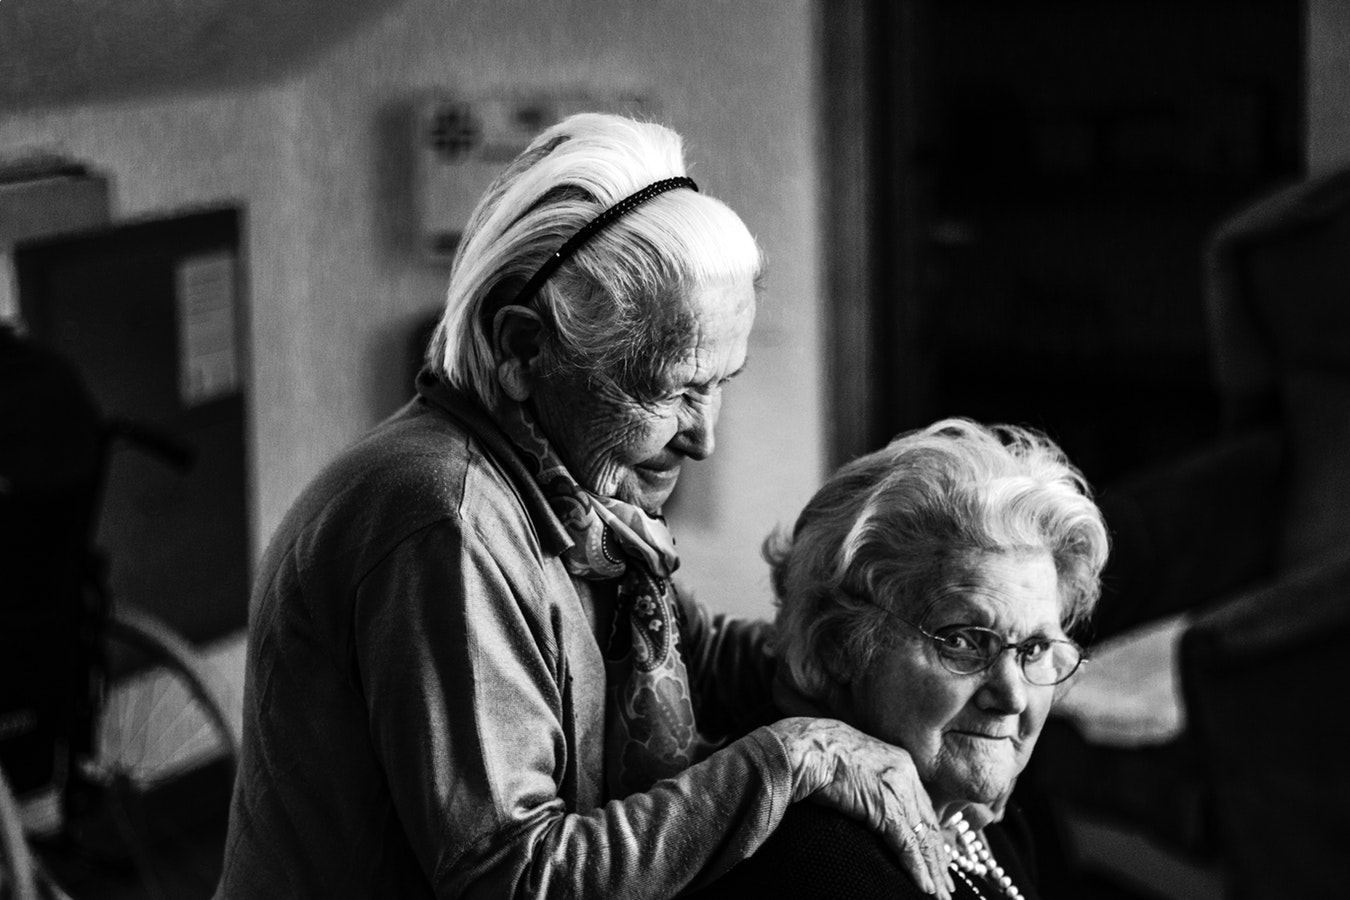 An elderly woman helping to comfort and create a safe enviorment for her friend with alzheimers